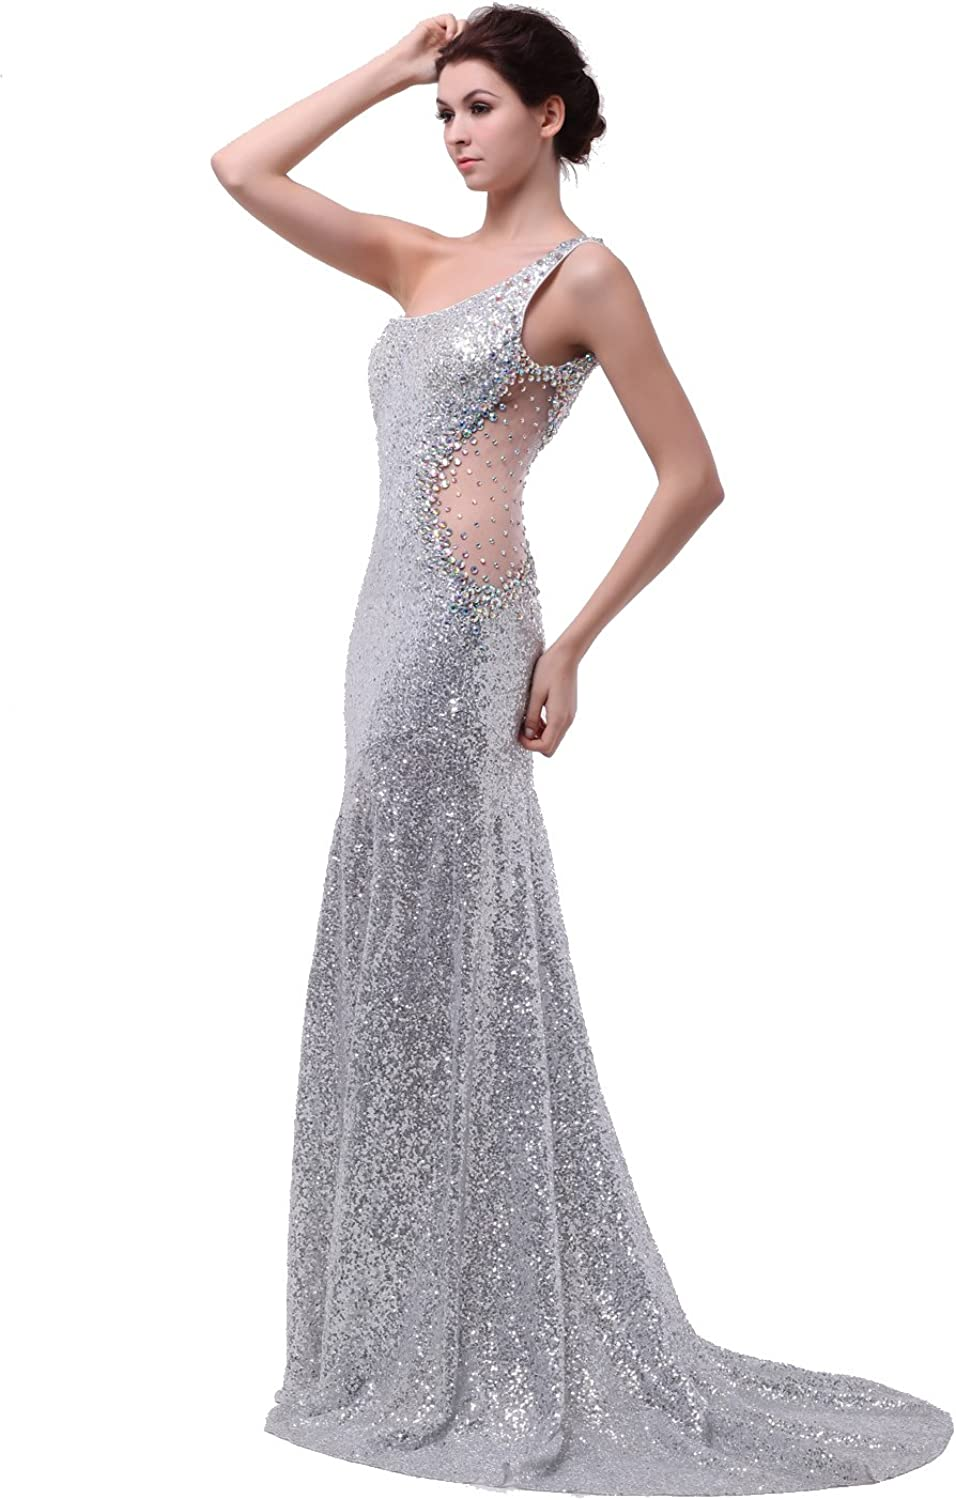 Honey Qiao Sequins One Shoulder Prom Dresses Beading Silver Evening Gowns (US8)